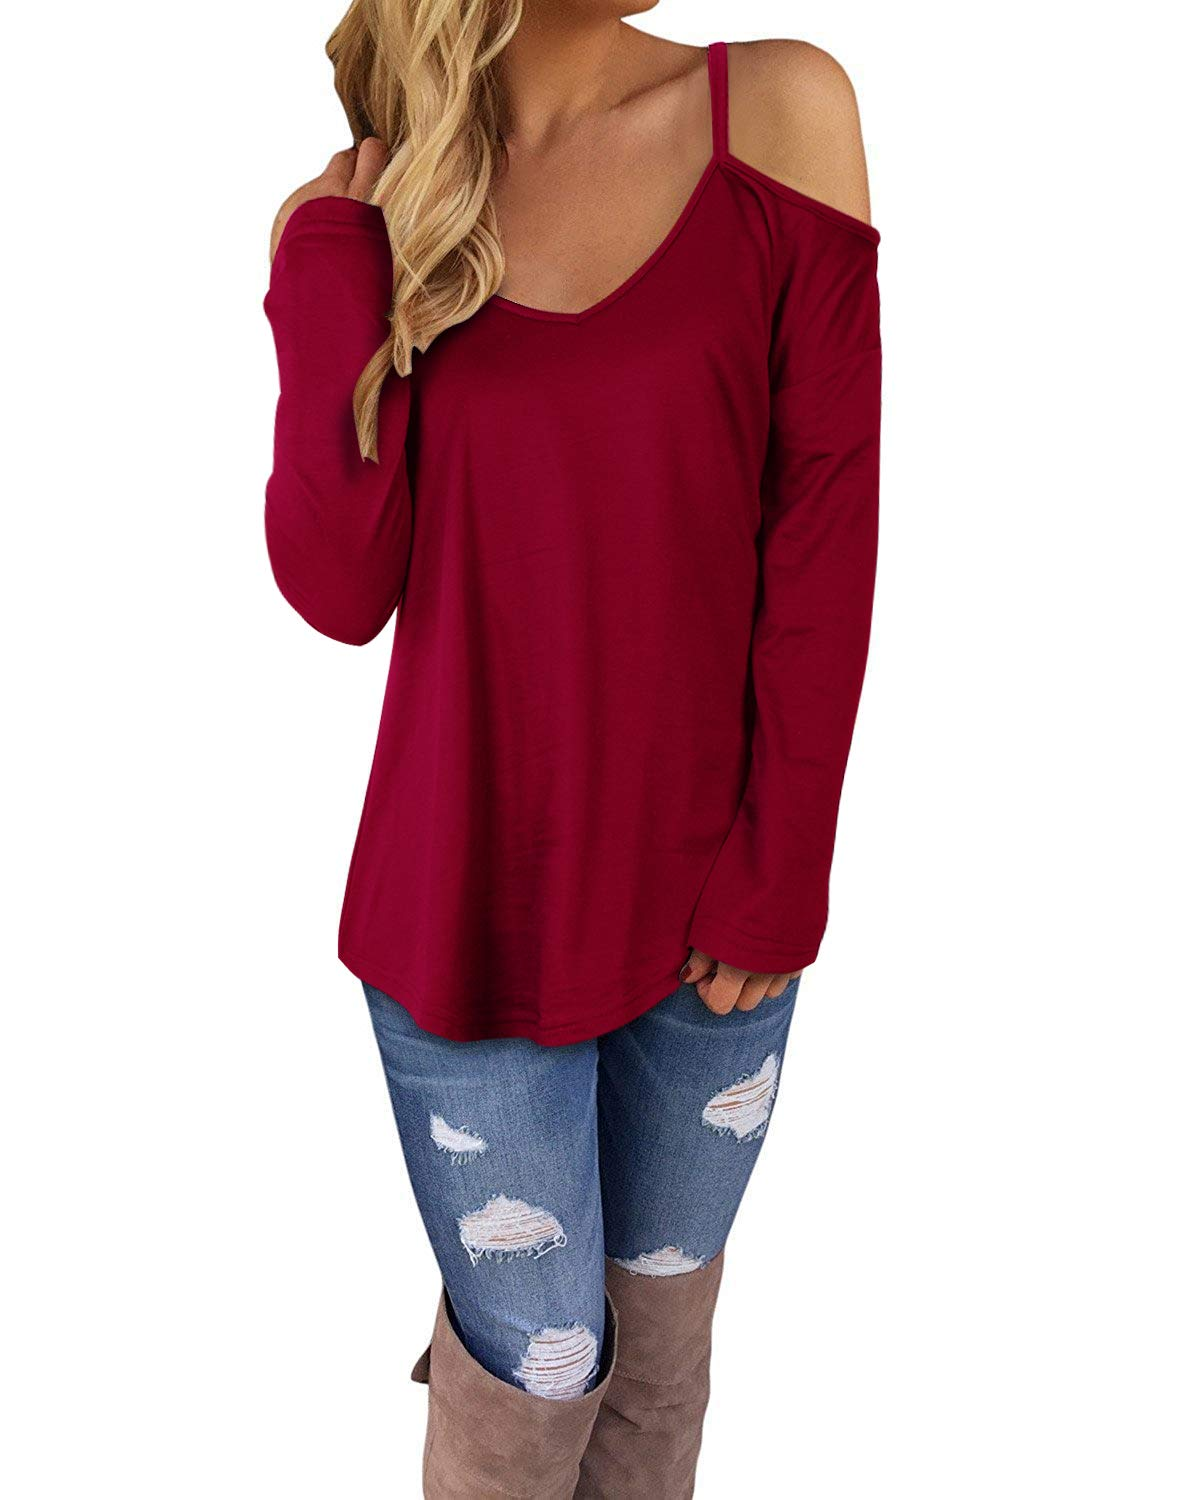 STYLEWORD Women's Off Shoulder Loose Casual Knitted Sweater Top Blouse(Wine,L)